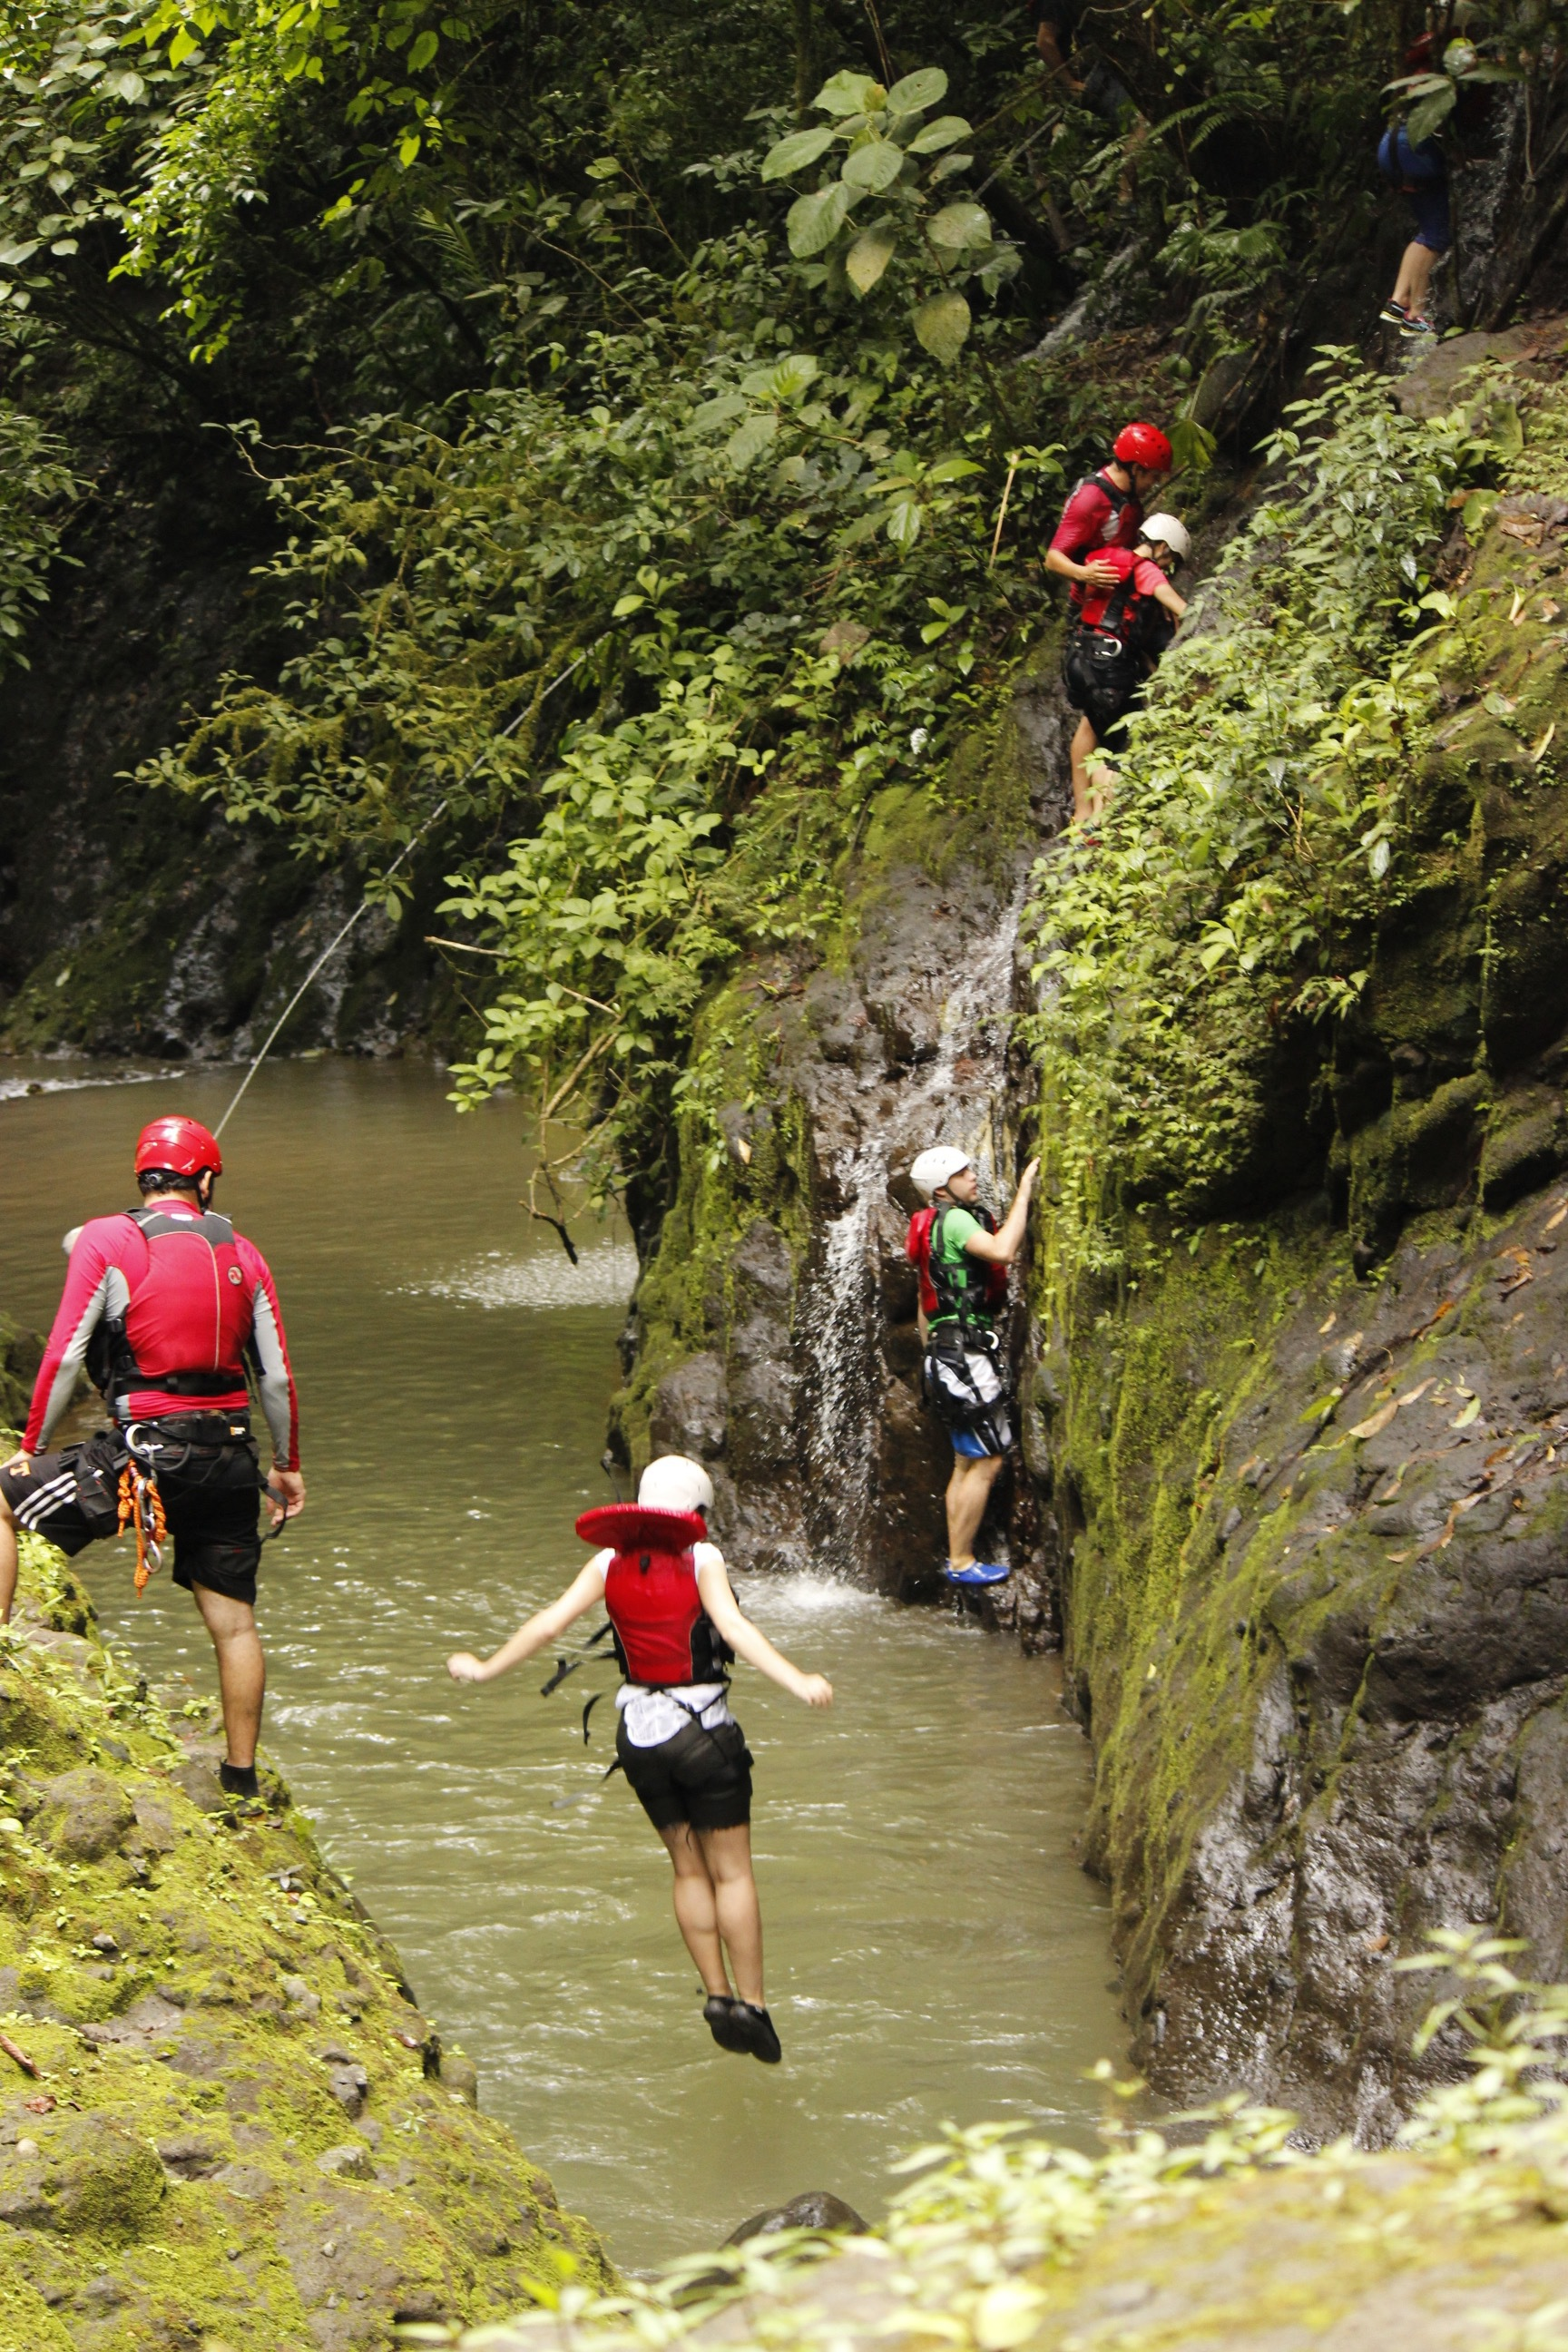 Costa Rica EXTREME private tour Gravity Falls Waterfall Jumping with Desafio! Costa Rica Vacation 2021